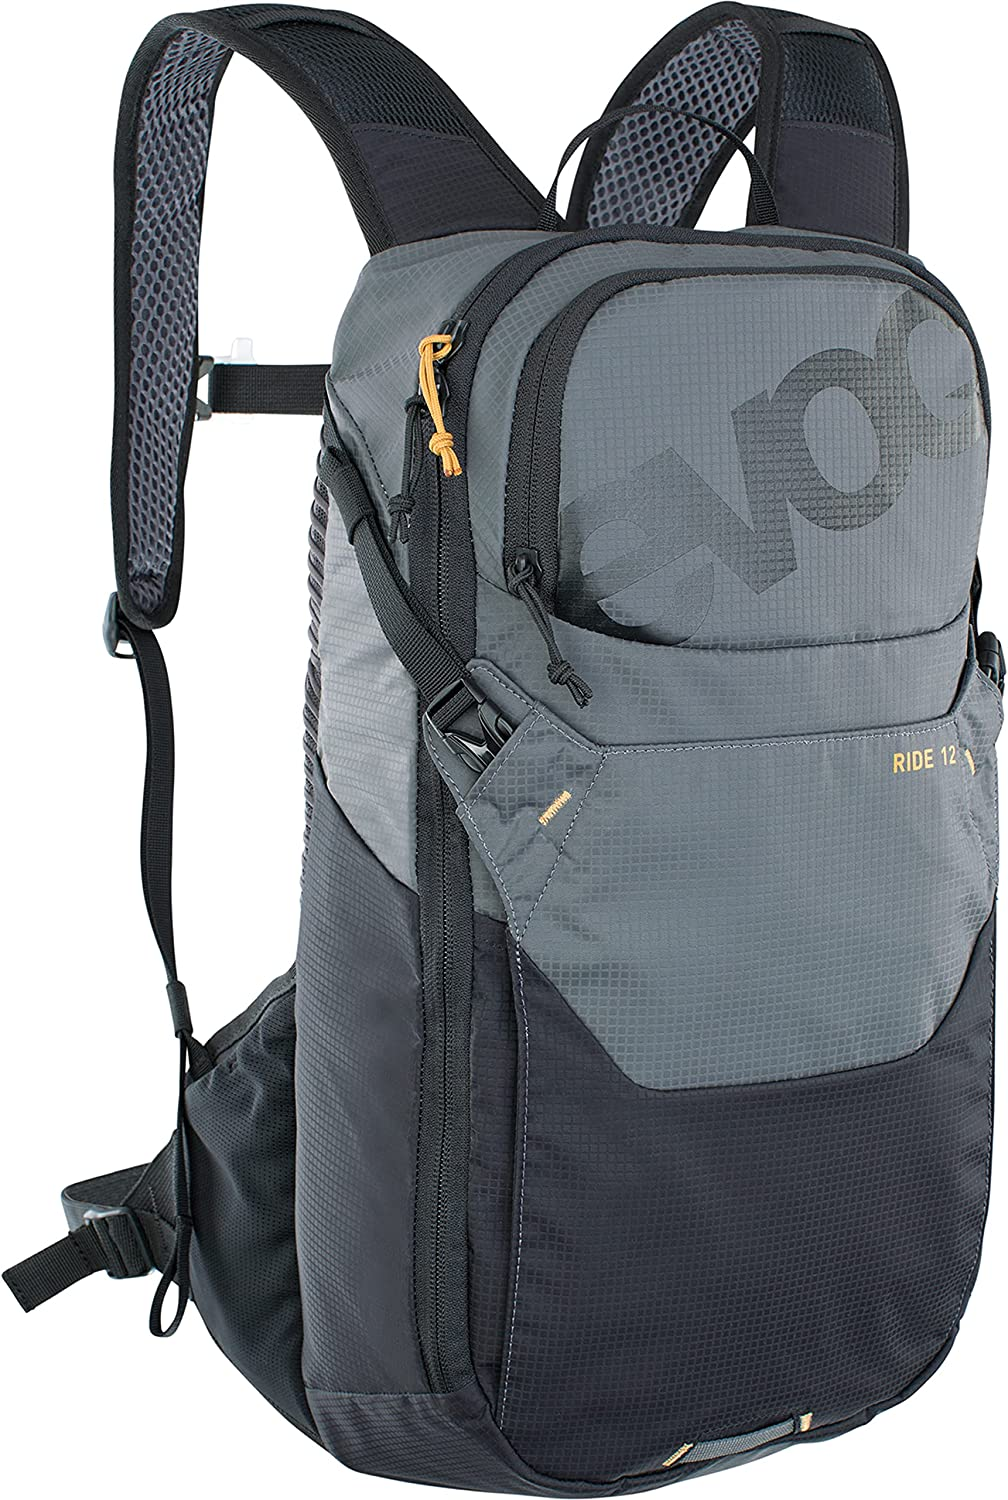 SEAL limited product Max 74% OFF evoc Ride 12 Hydration o w Bladder Backpack